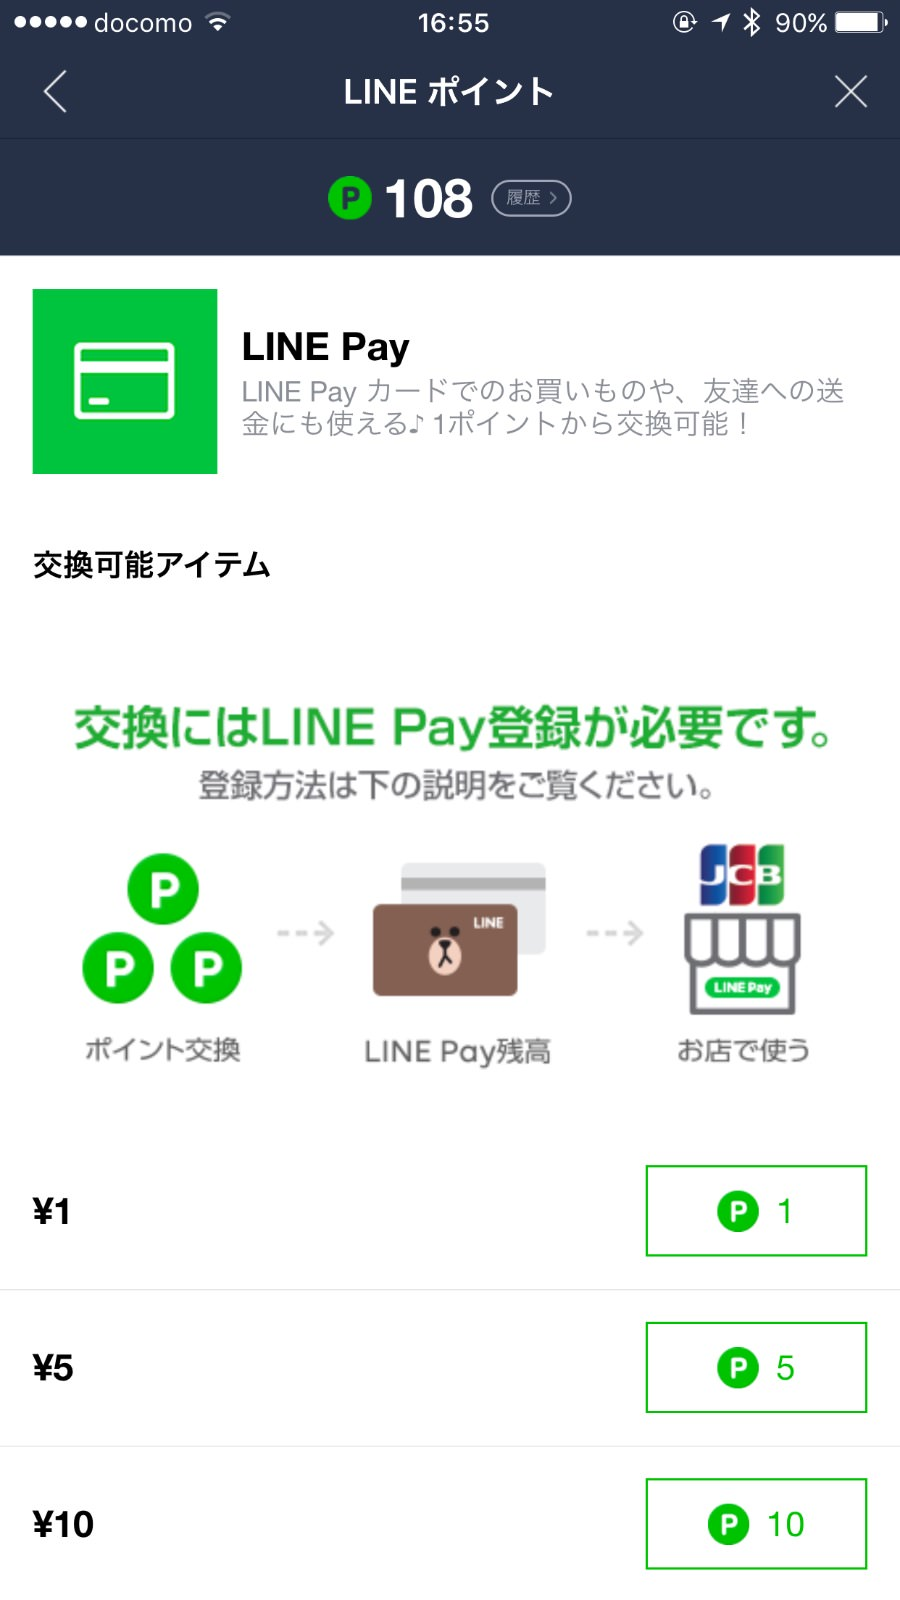 Line pay card point 0668